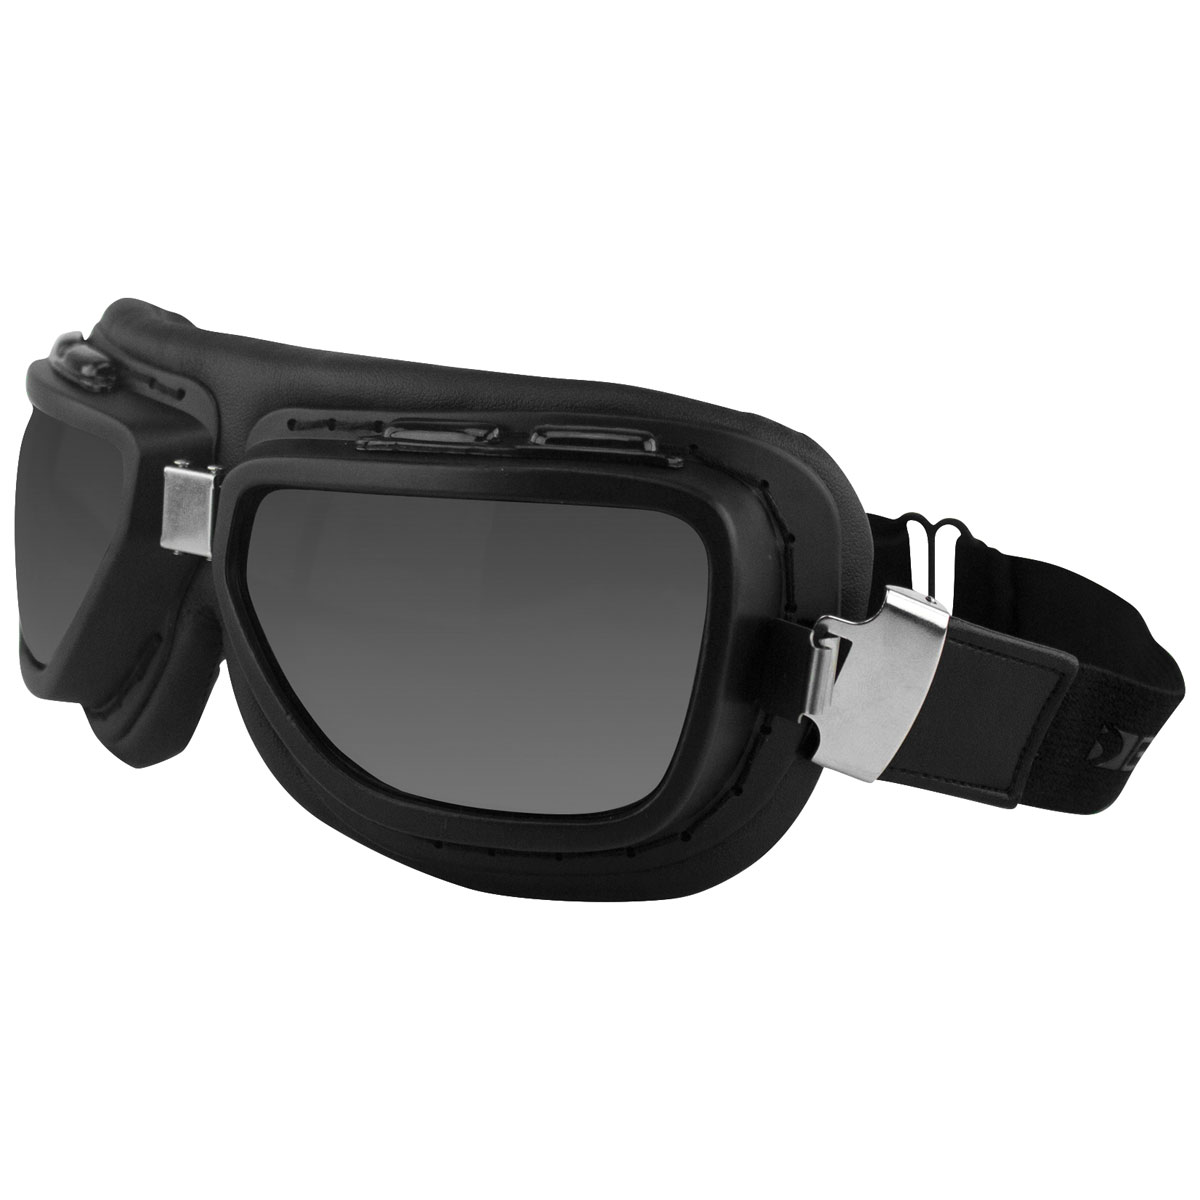 Bobster Pilot Goggles with Clear/Smoke Lens